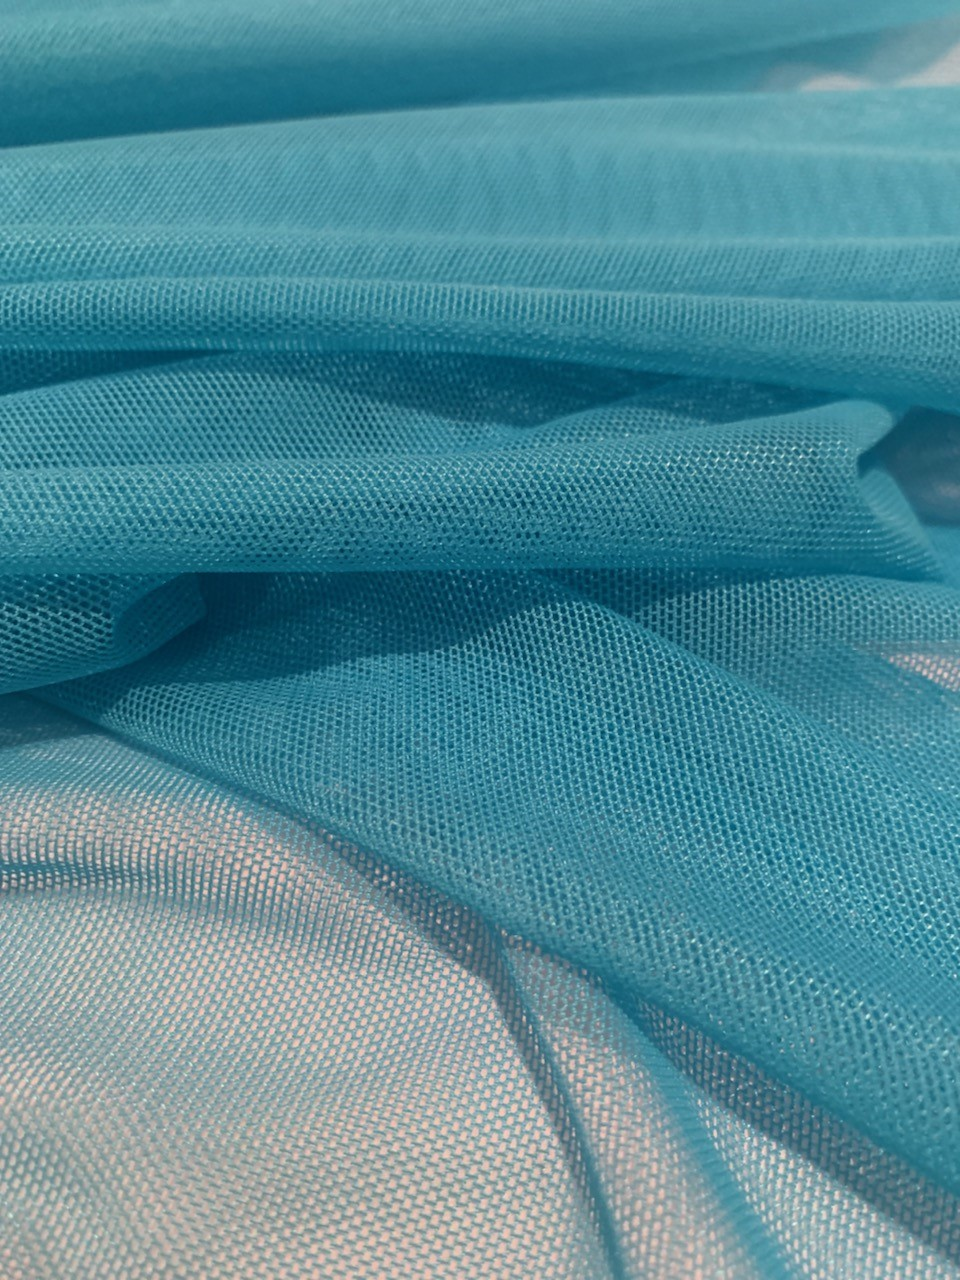 "60"" Turquoise Power Mesh Fabric 80% Poly 20% Spandex Per Yard"